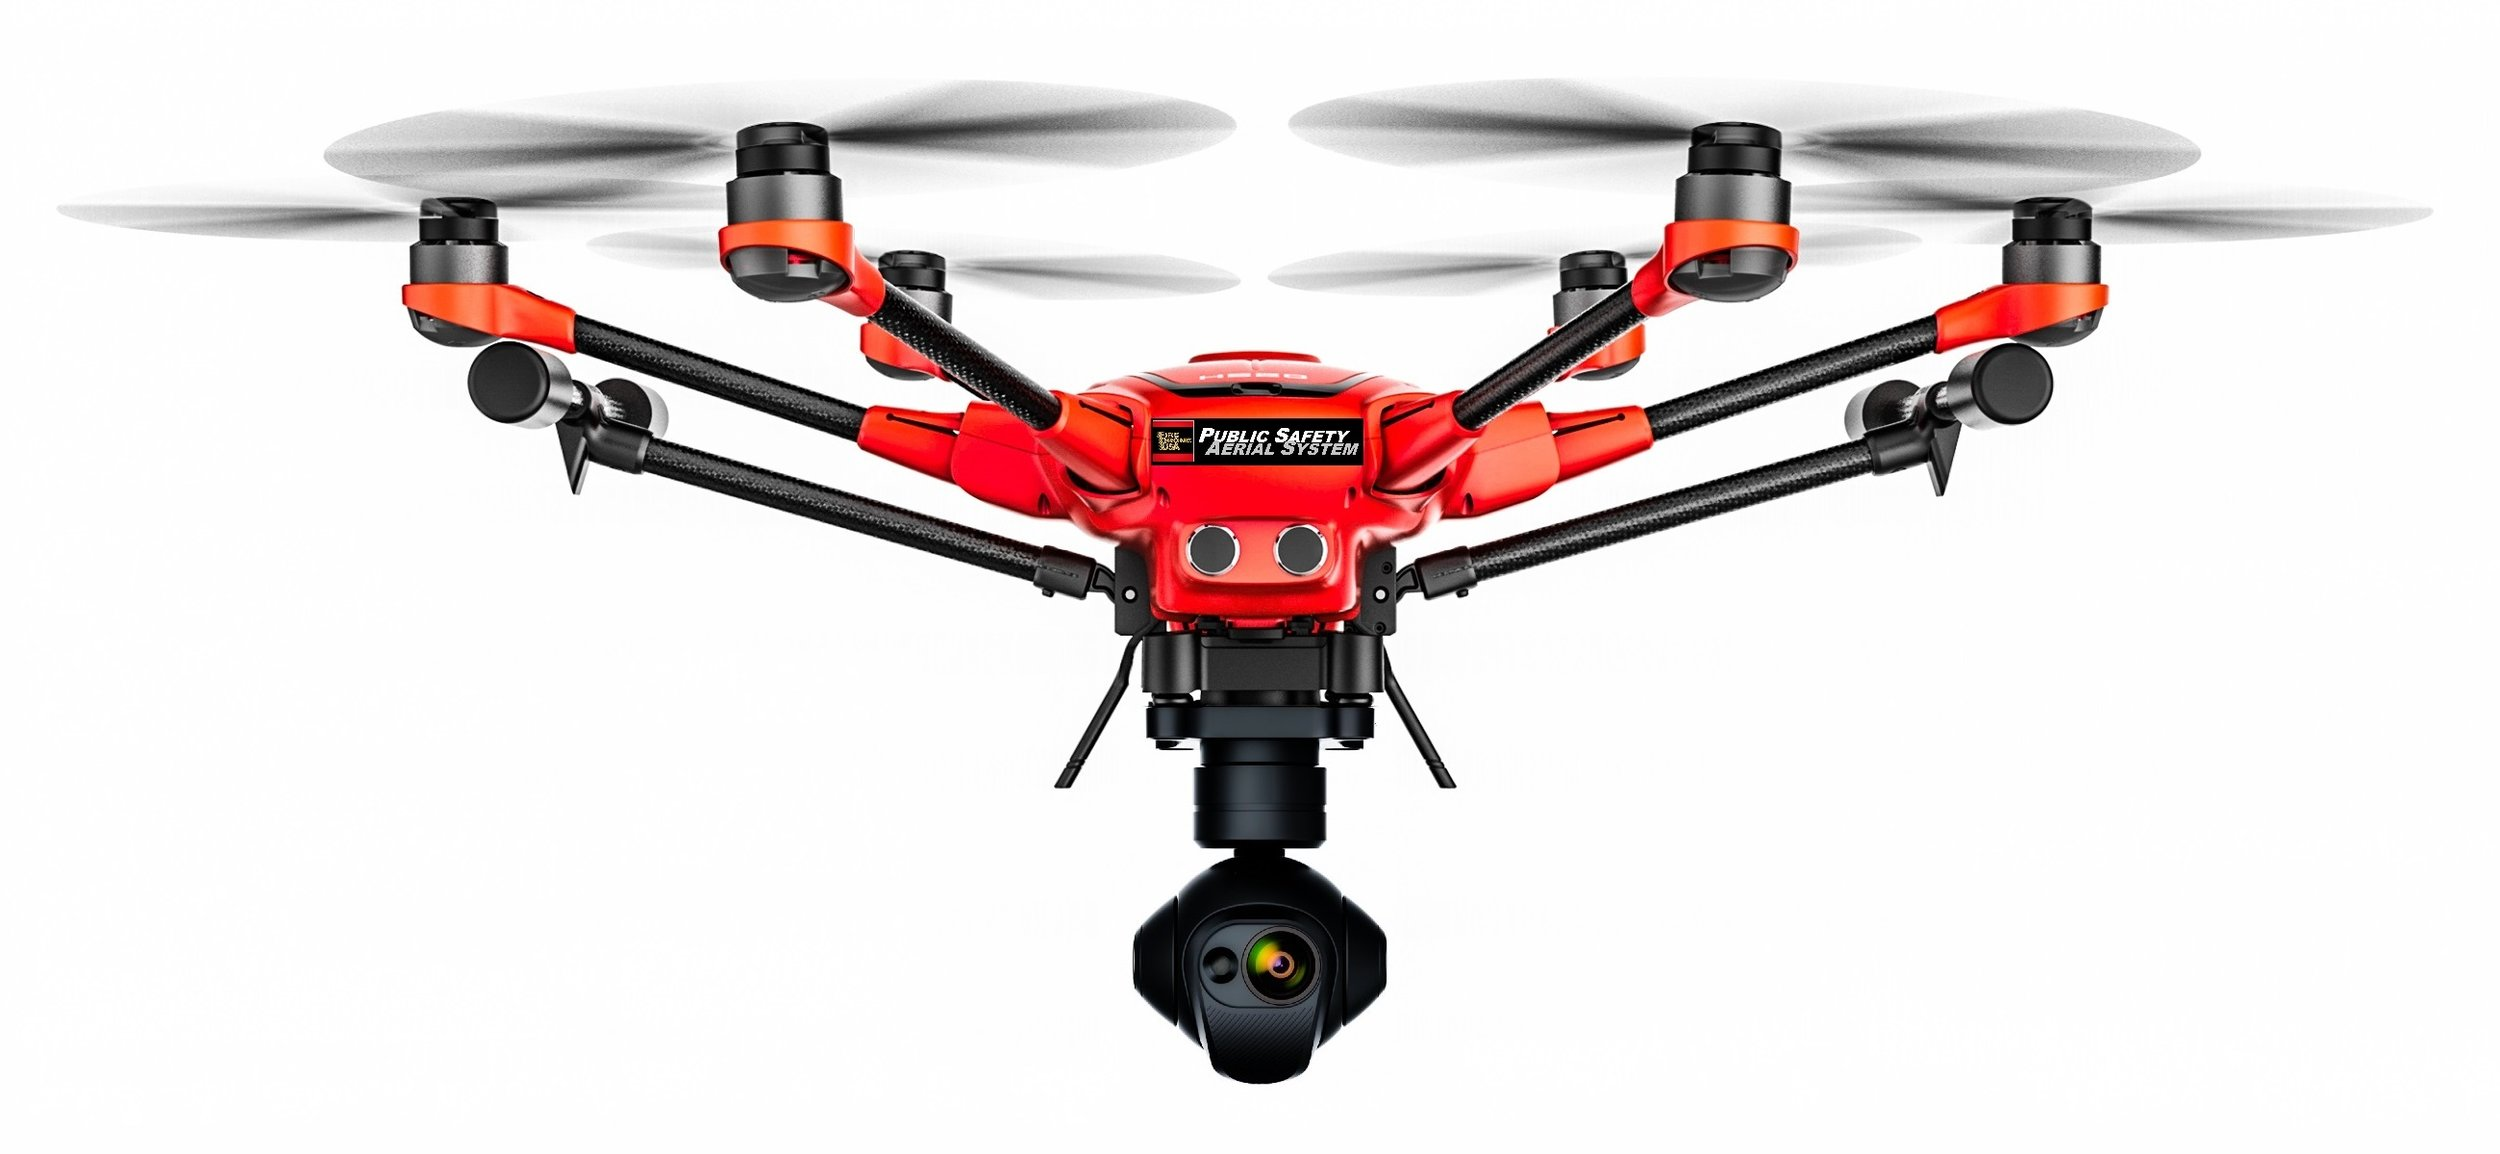 Public Safety #1 - The FireDroneUSA Hexacopter FR adds fire-resistance with quality features and performance. From thermal imaging to stability in high winds, it is built to last.